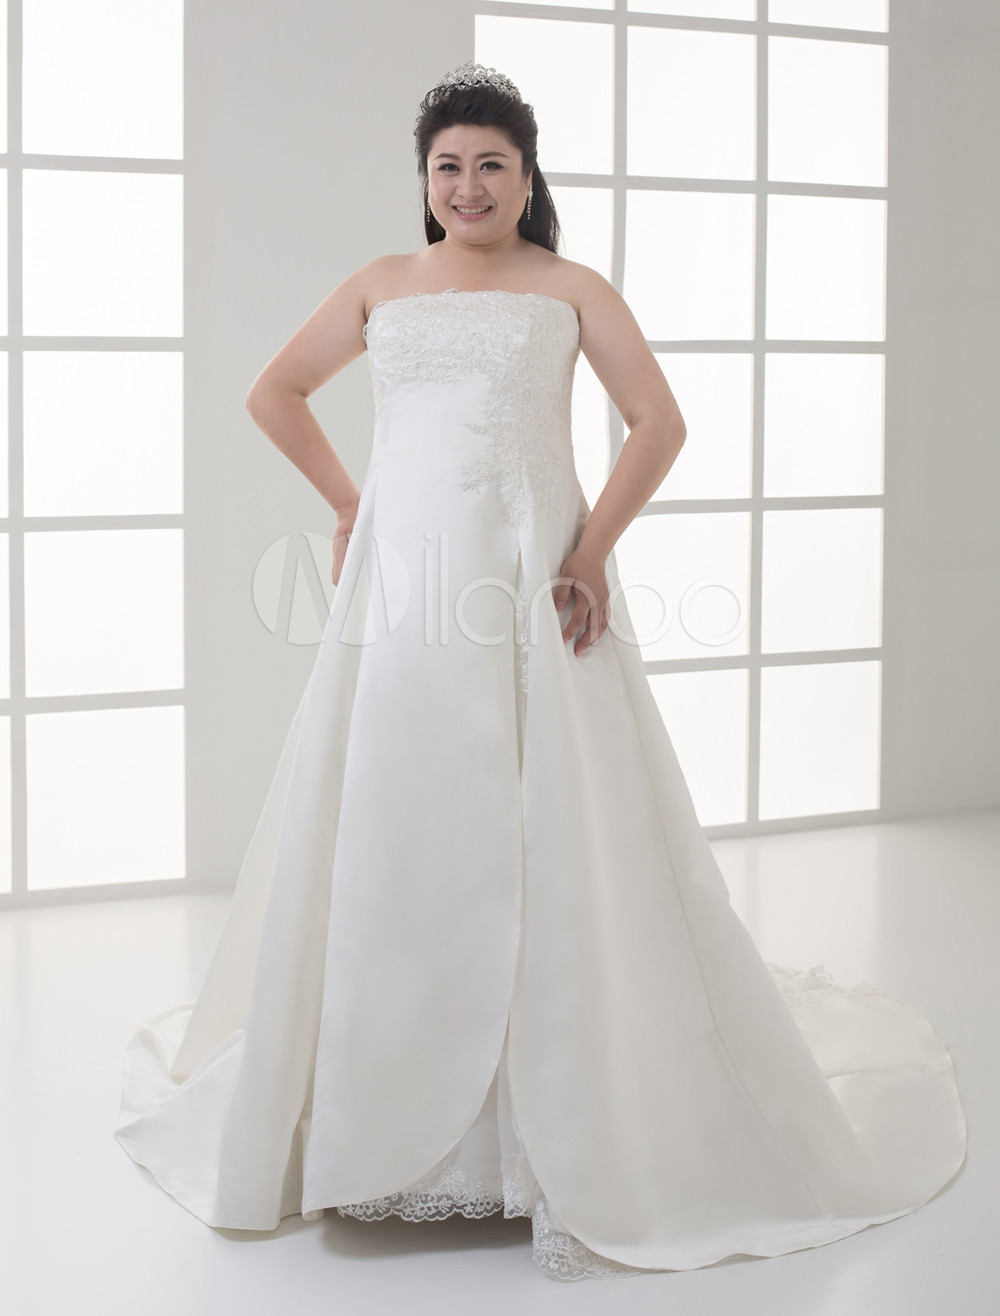 White A-line Short Sleeves Applique Beaded Satin Plus Size Wedding Gown